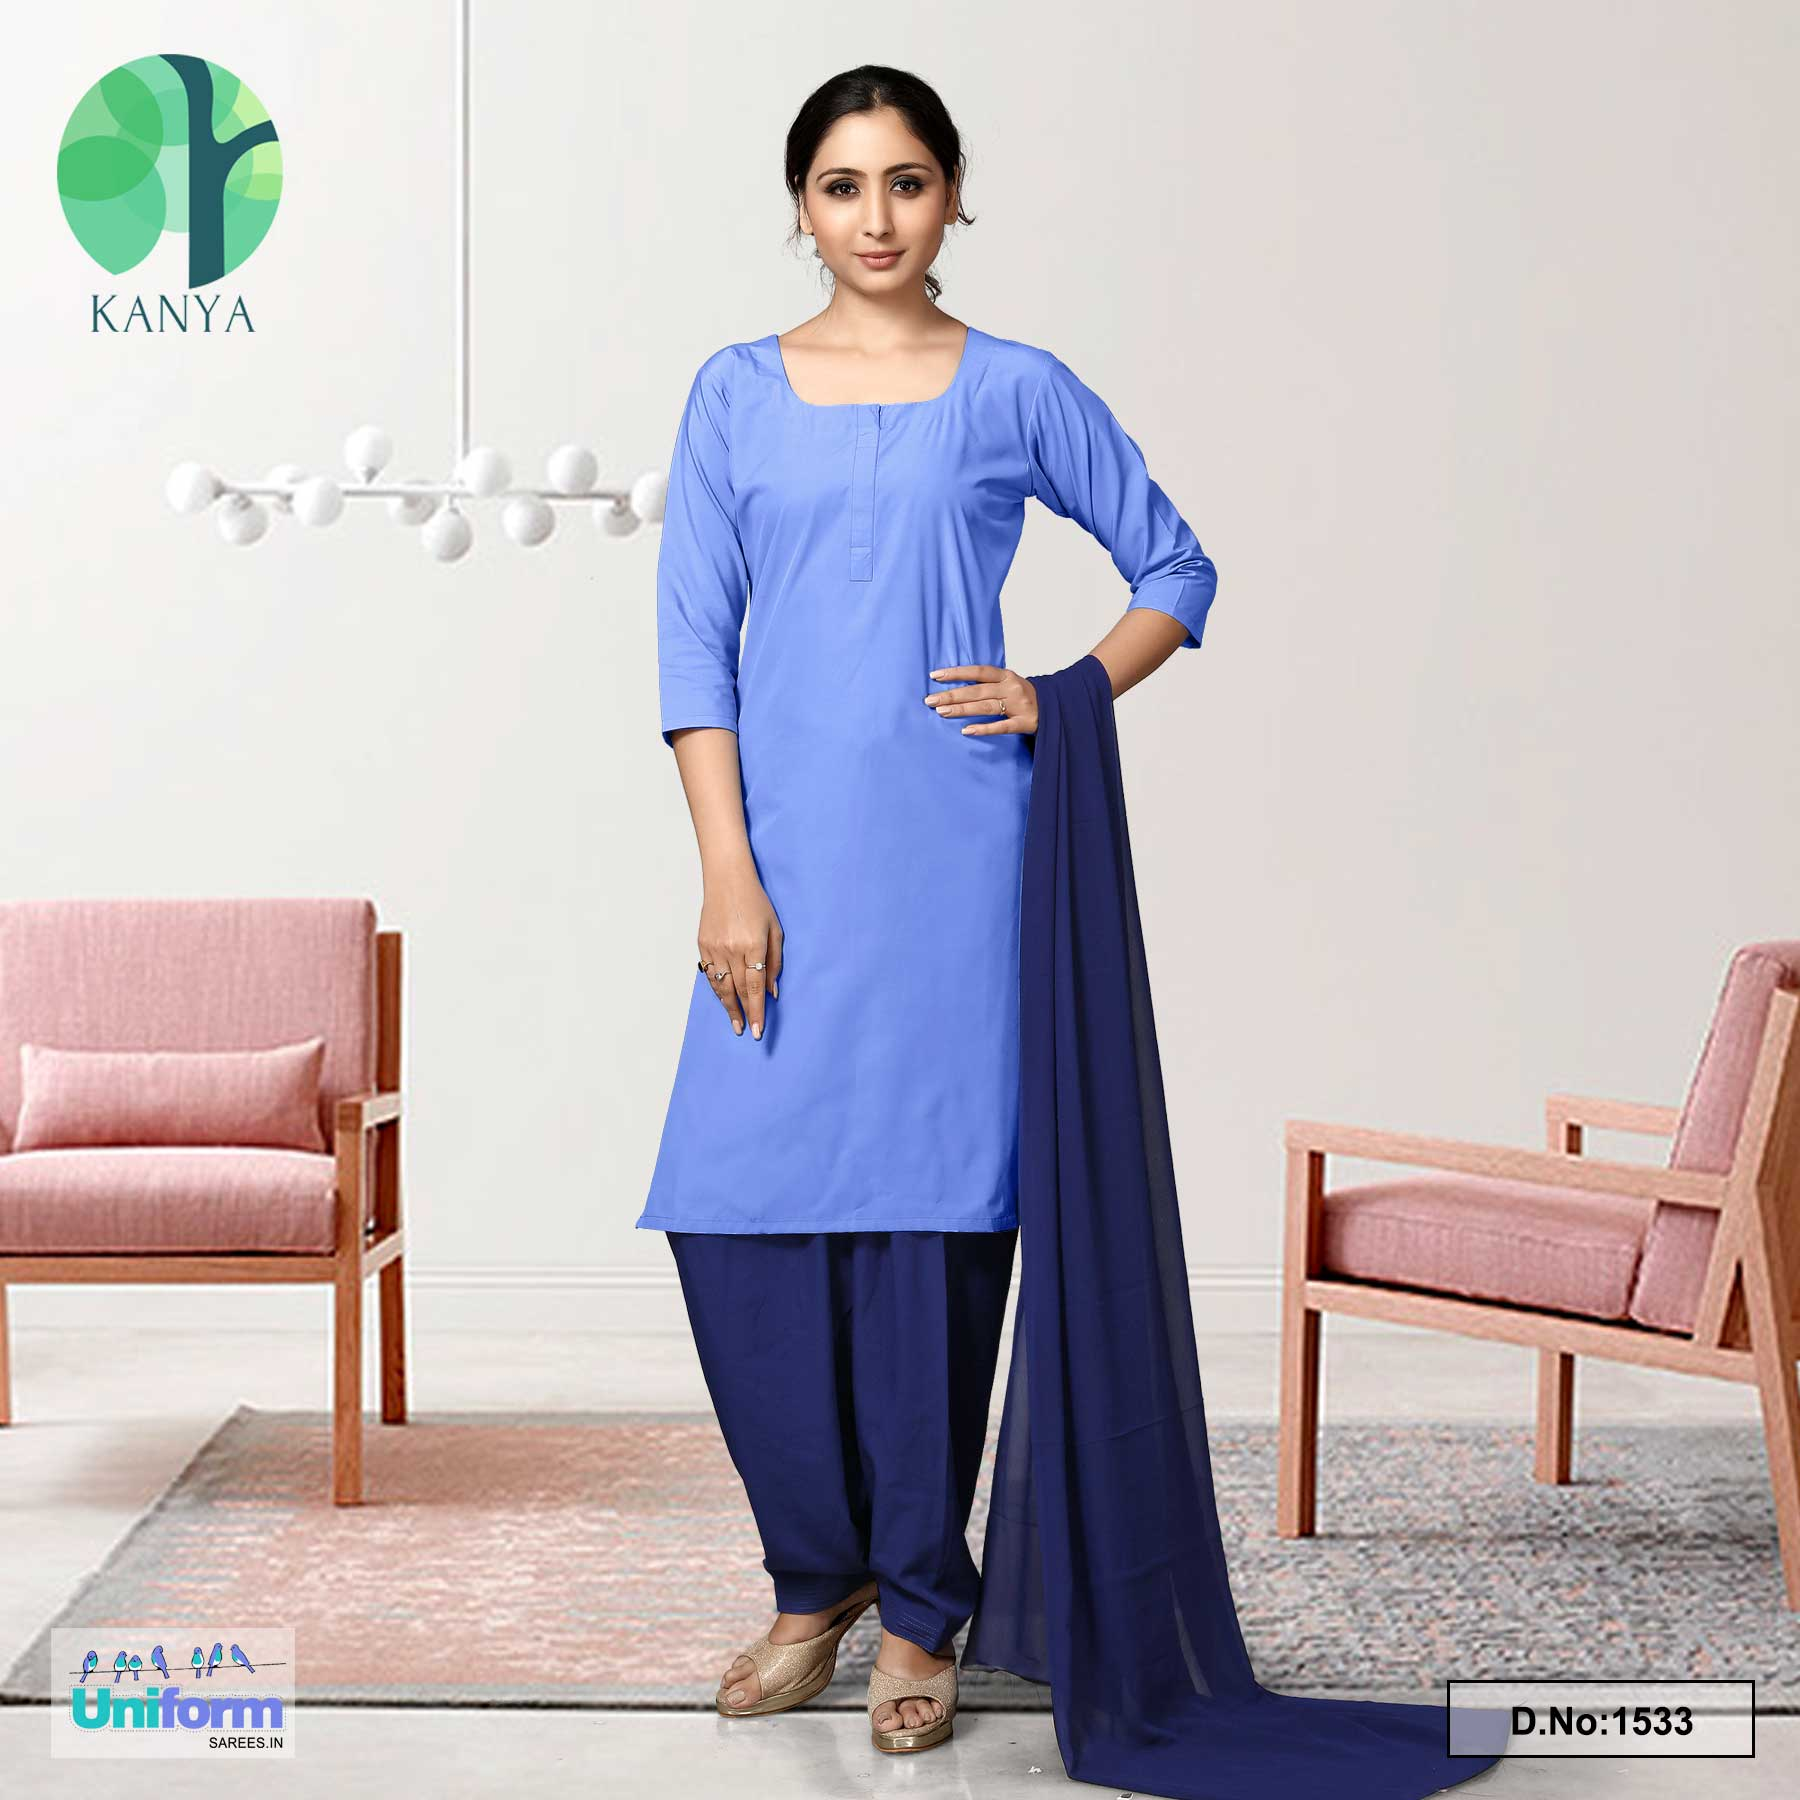 Blue Nevy Blue Women's Poly Cotton Unstitched Salwar Kameez Dress Materials for Housekeeping Uniforms